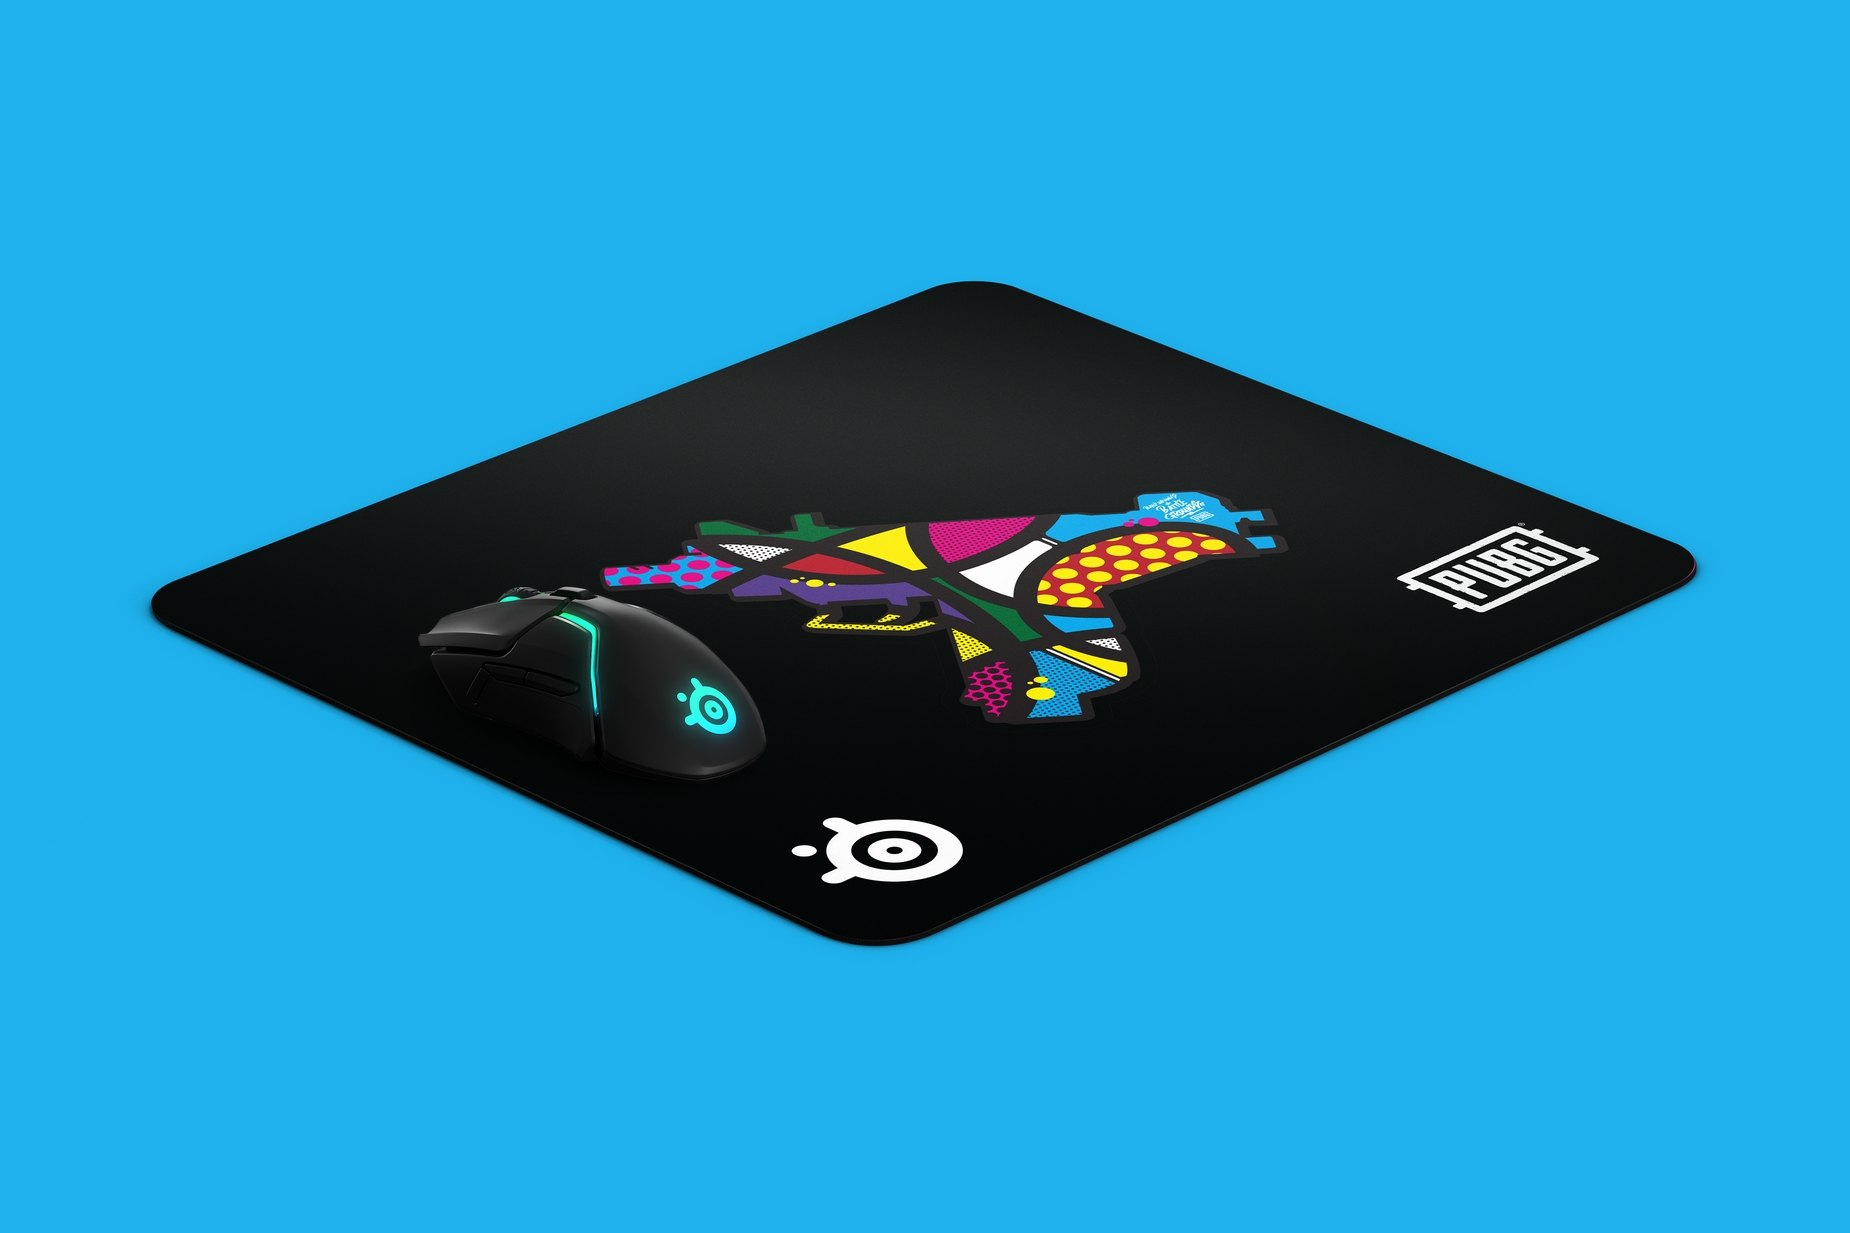 Image of a mousepad laying on a diagonal. Mousepad has a graffiti adorned uzi design. Mousepad has a Steelseries mouse on top of mousepad to display scale of mousepad.